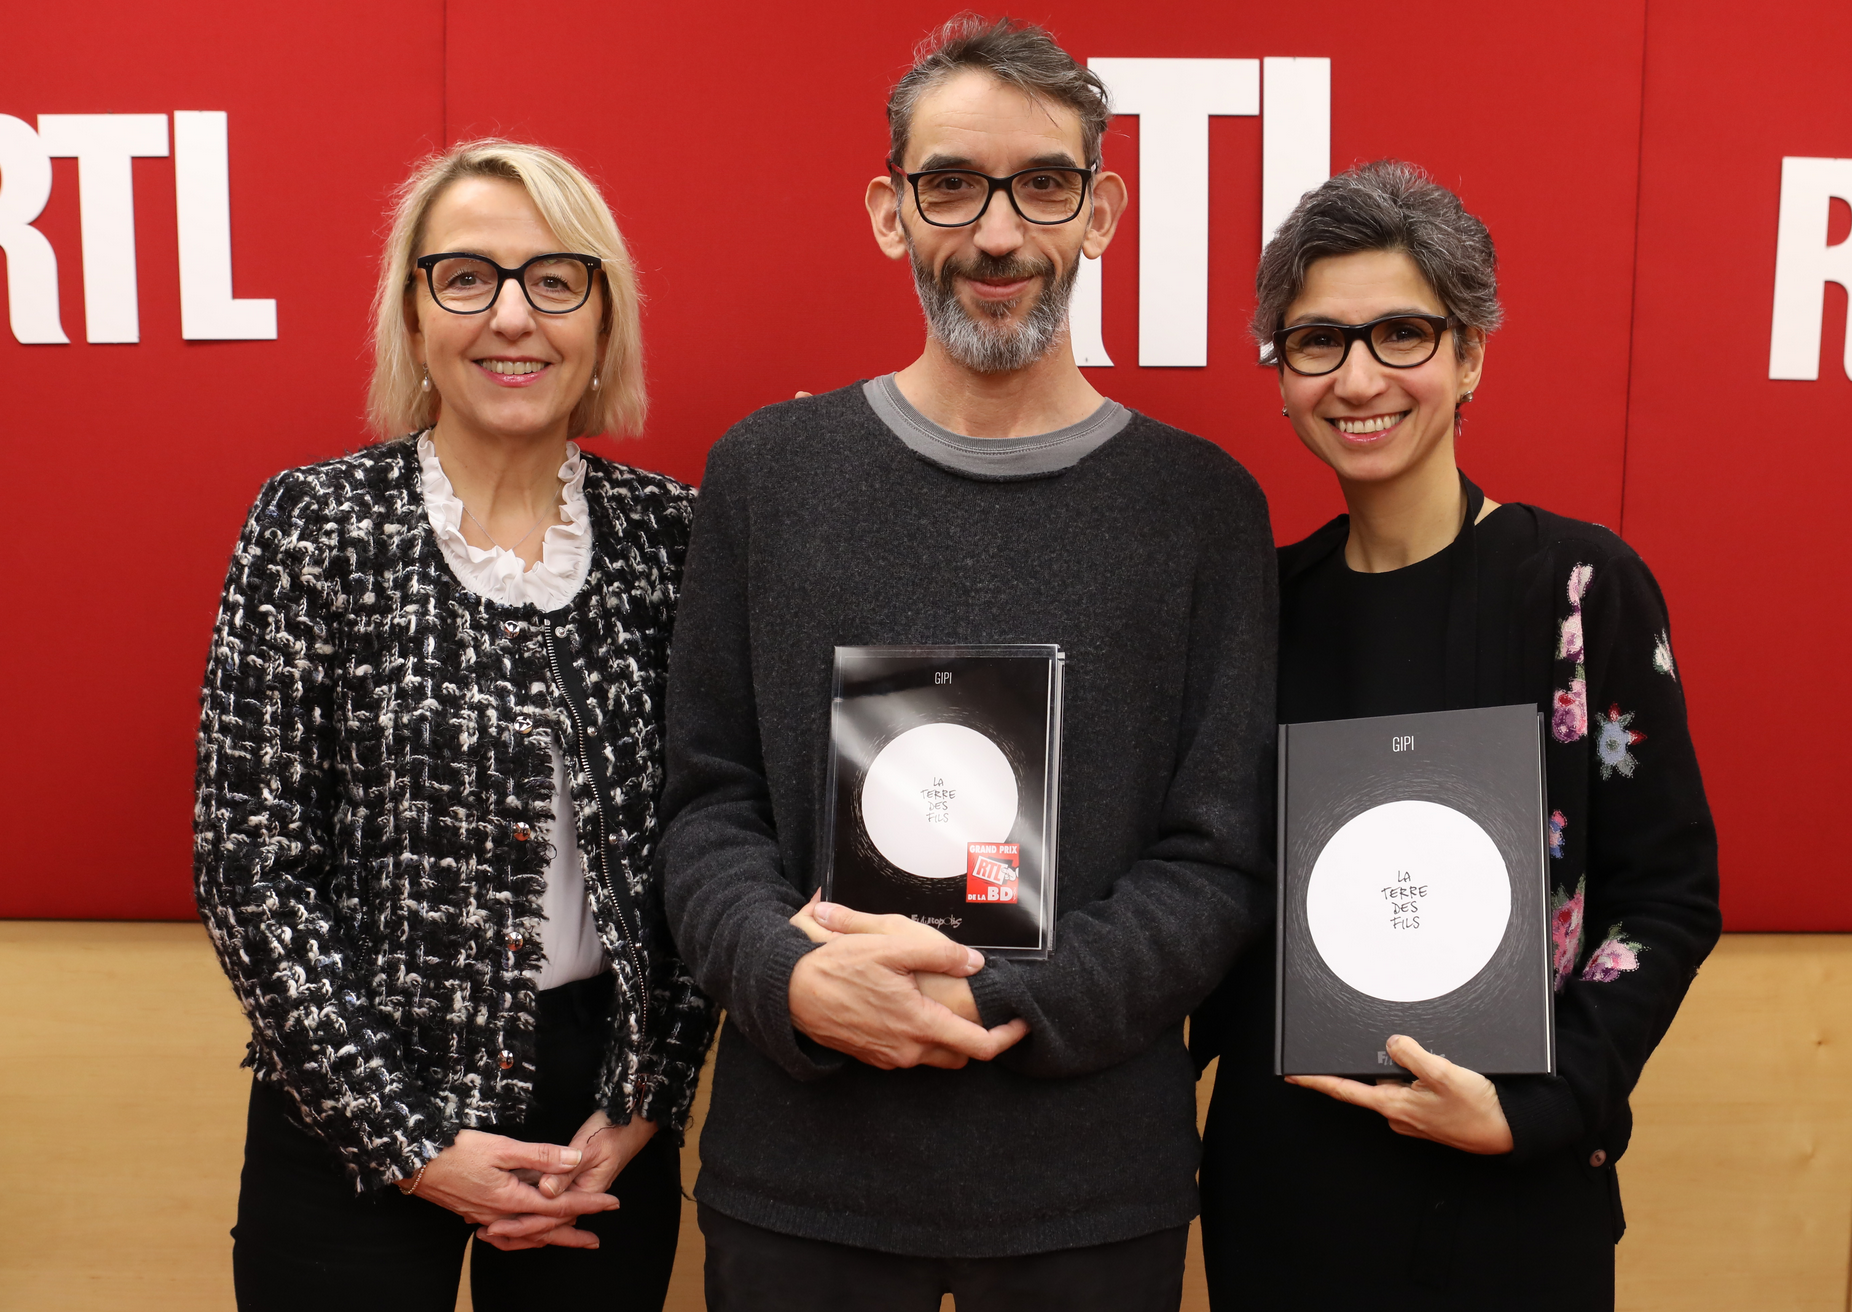 Le trophée lui a été remis, par Monique Younès et Catherine Mangin, directrice adjointe de l'information de RTL © Fred Bukajlo / Sipa Press